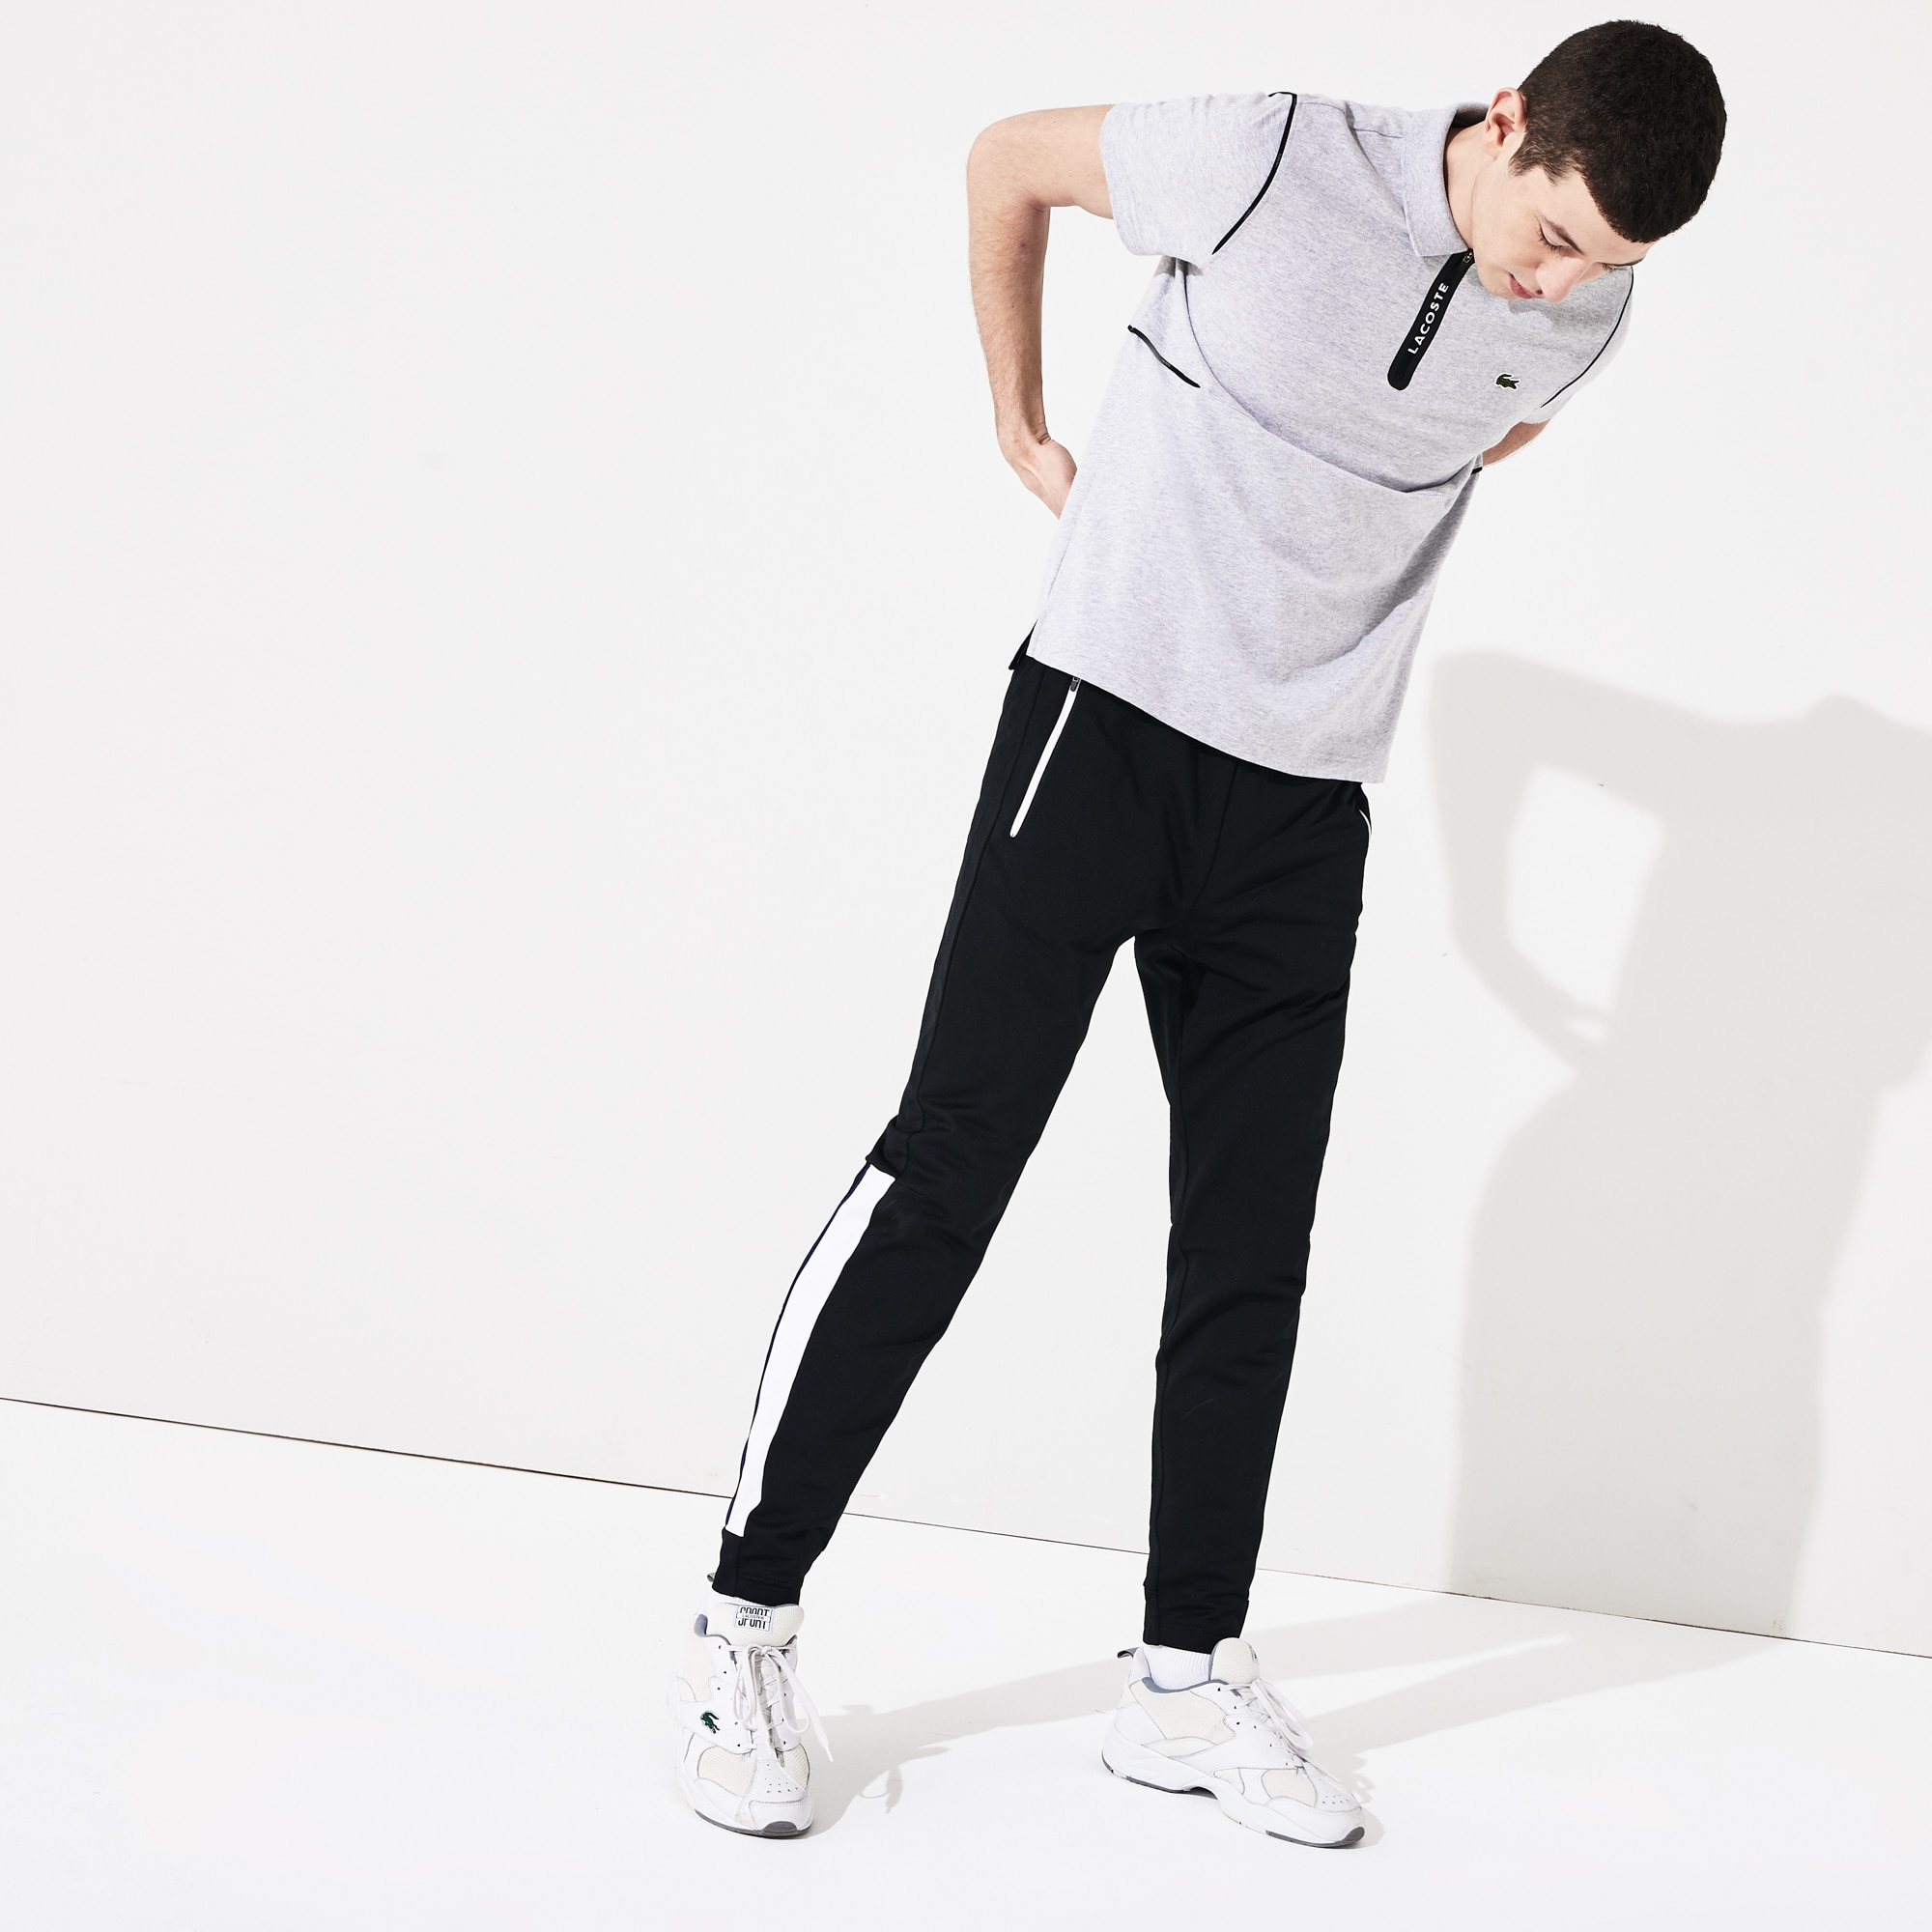 라코스테 Lacoste Men's SPORT Colorblock Tricot Sweatpants,Black / White / Blue - Y4W